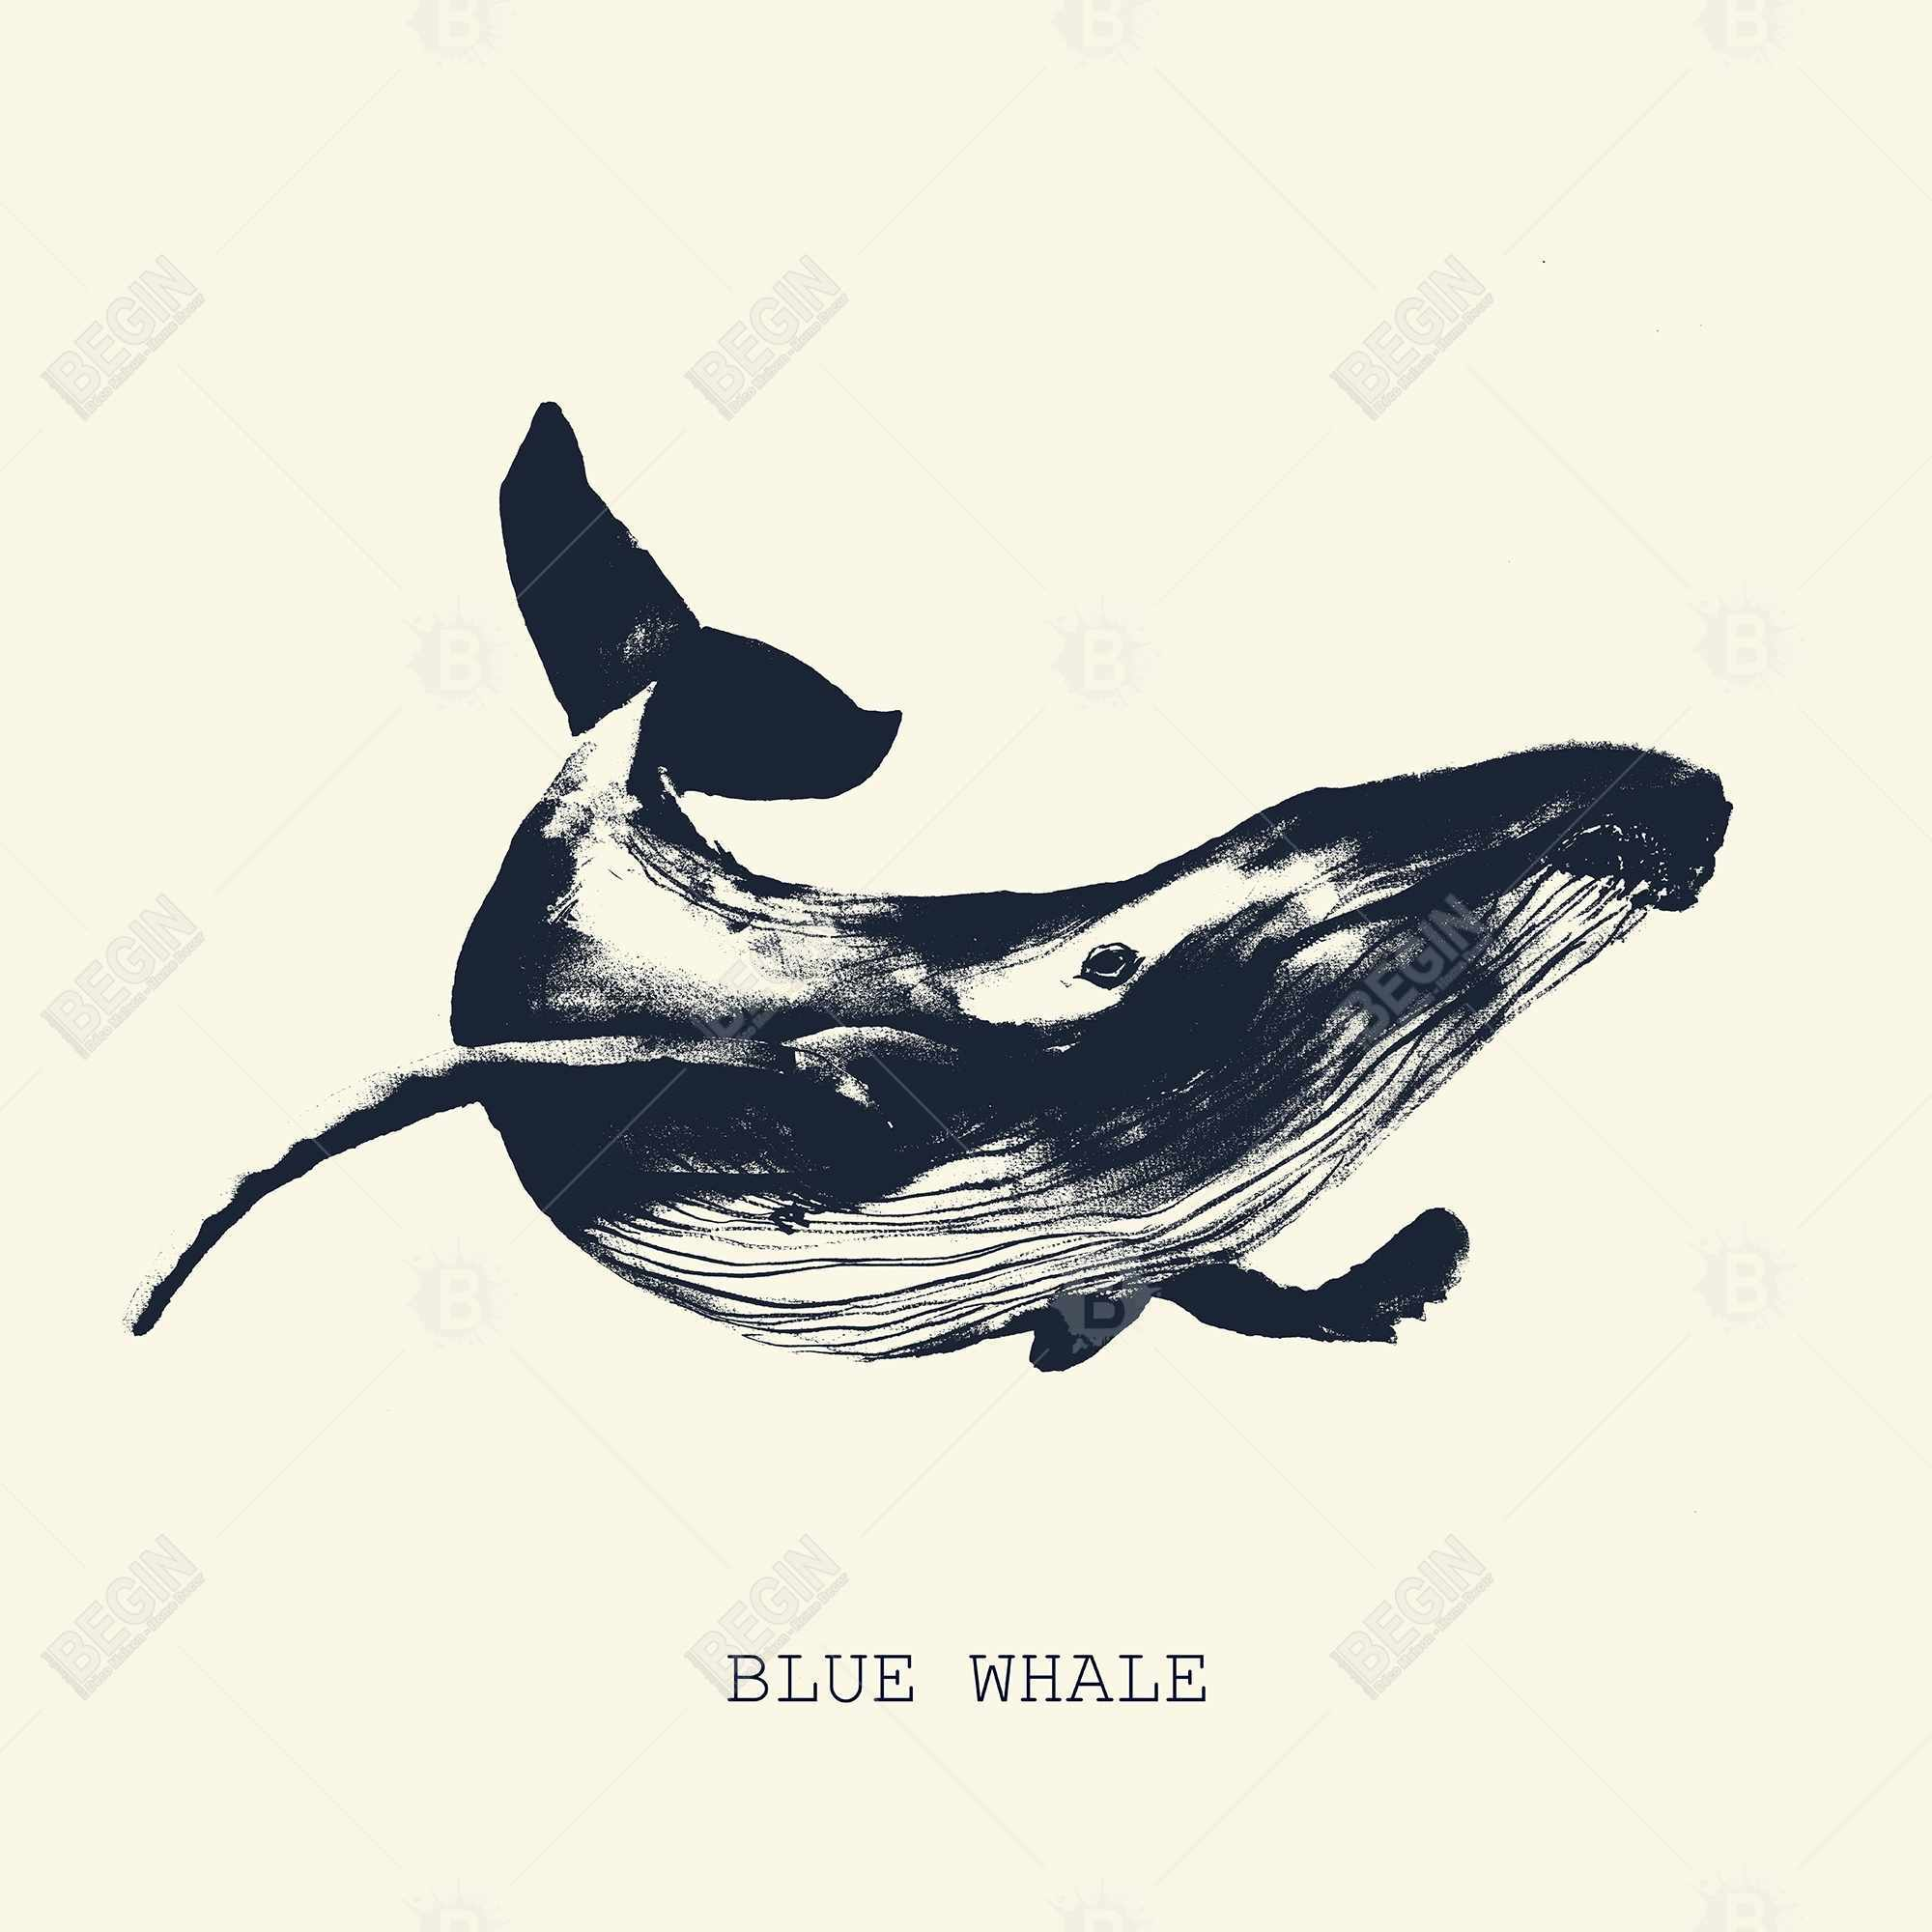 Blue whale sketch